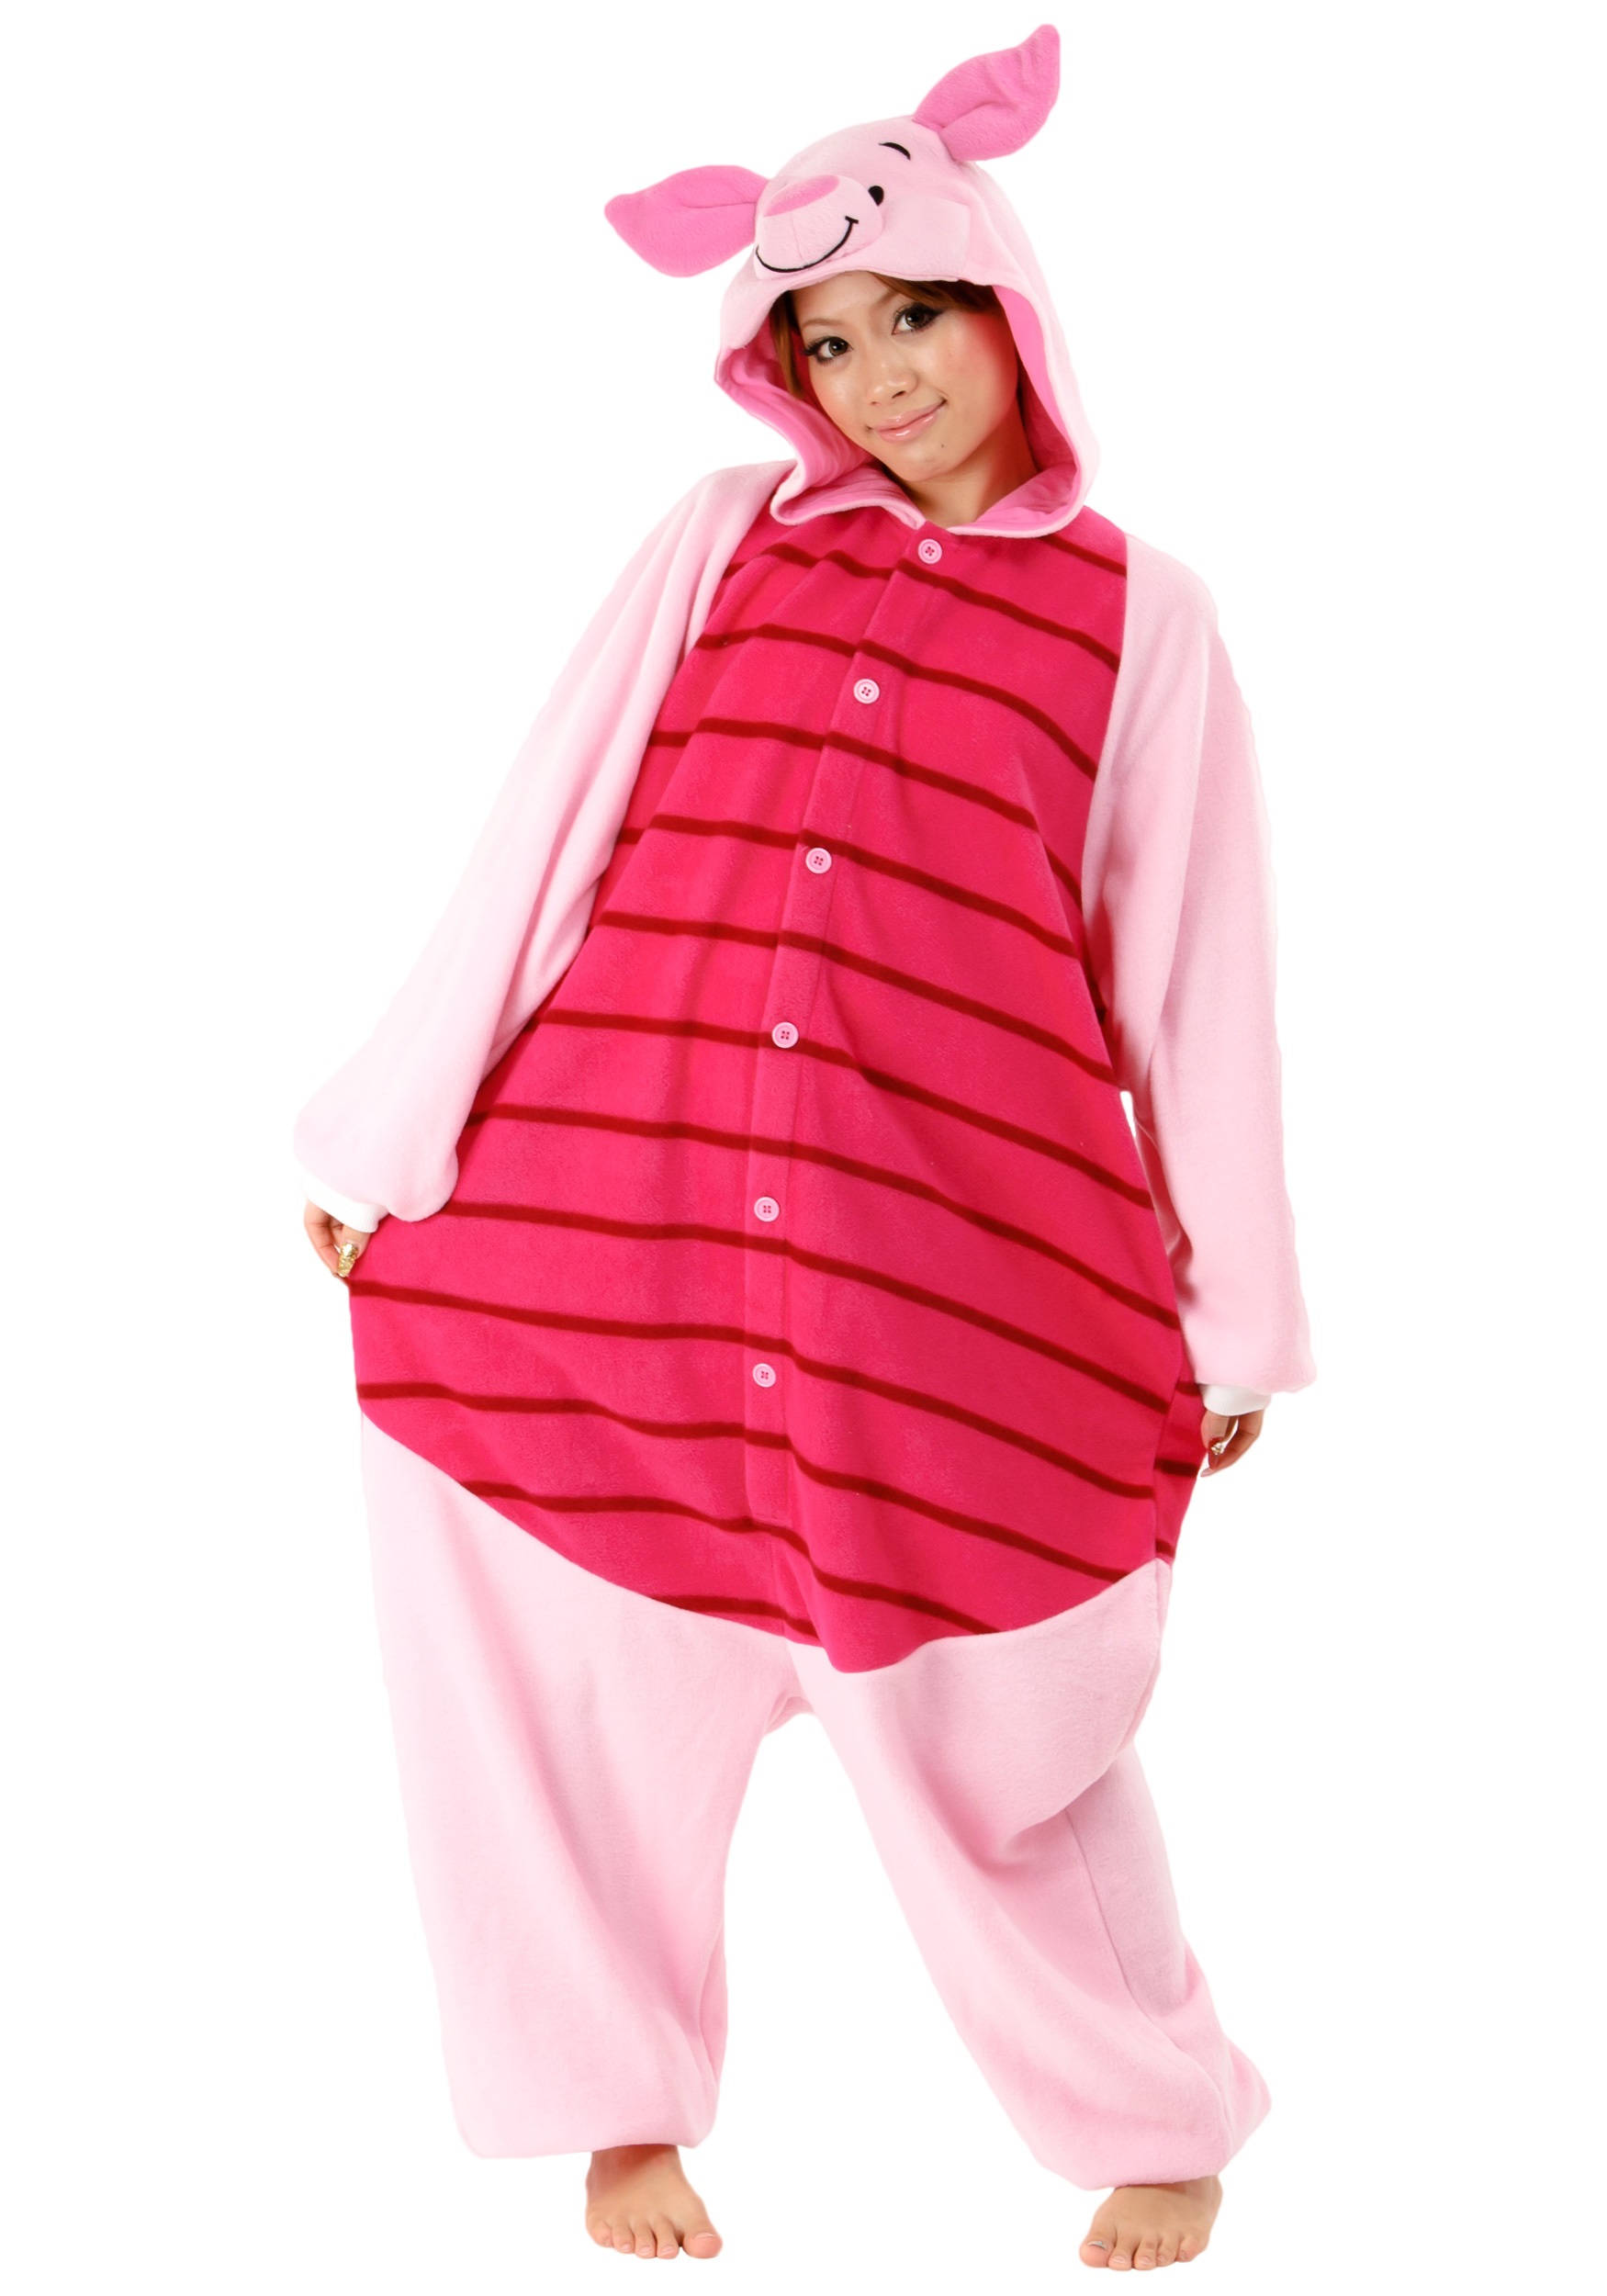 winnie the pooh costumes - tigger costumes, piglet costumes for